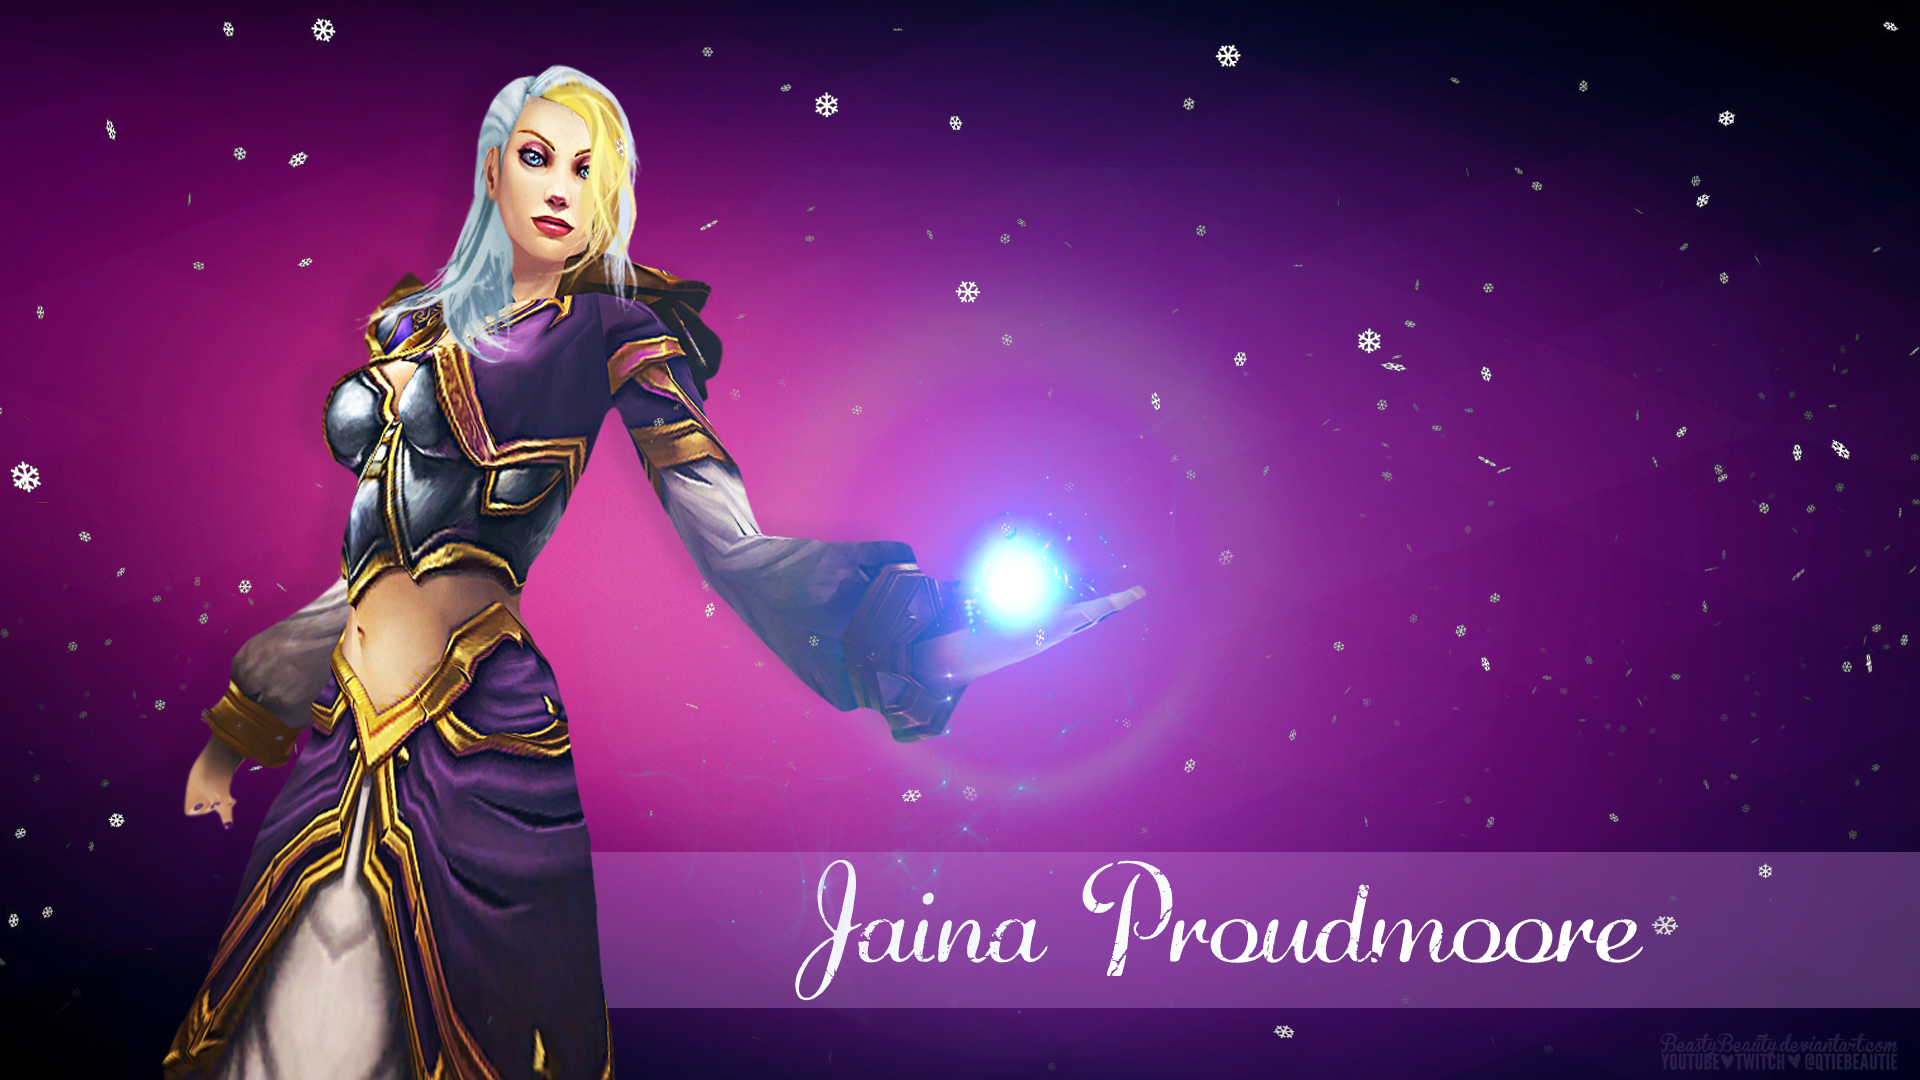 Jaina proudmoore lesbian sex exploited streaming